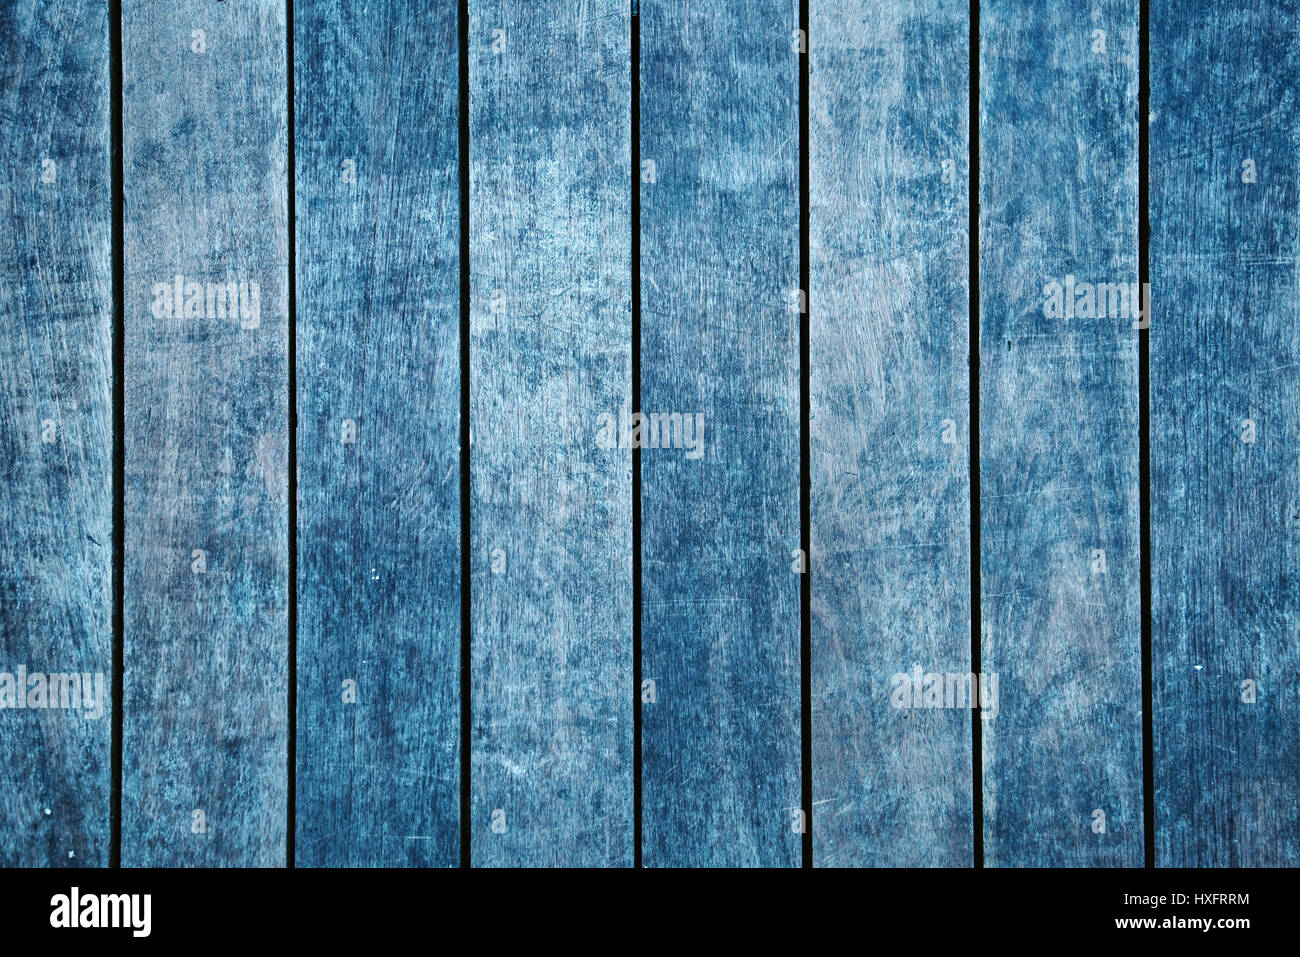 Weathered hardwood flooring texture, top view of old wooden planks Stock Photo